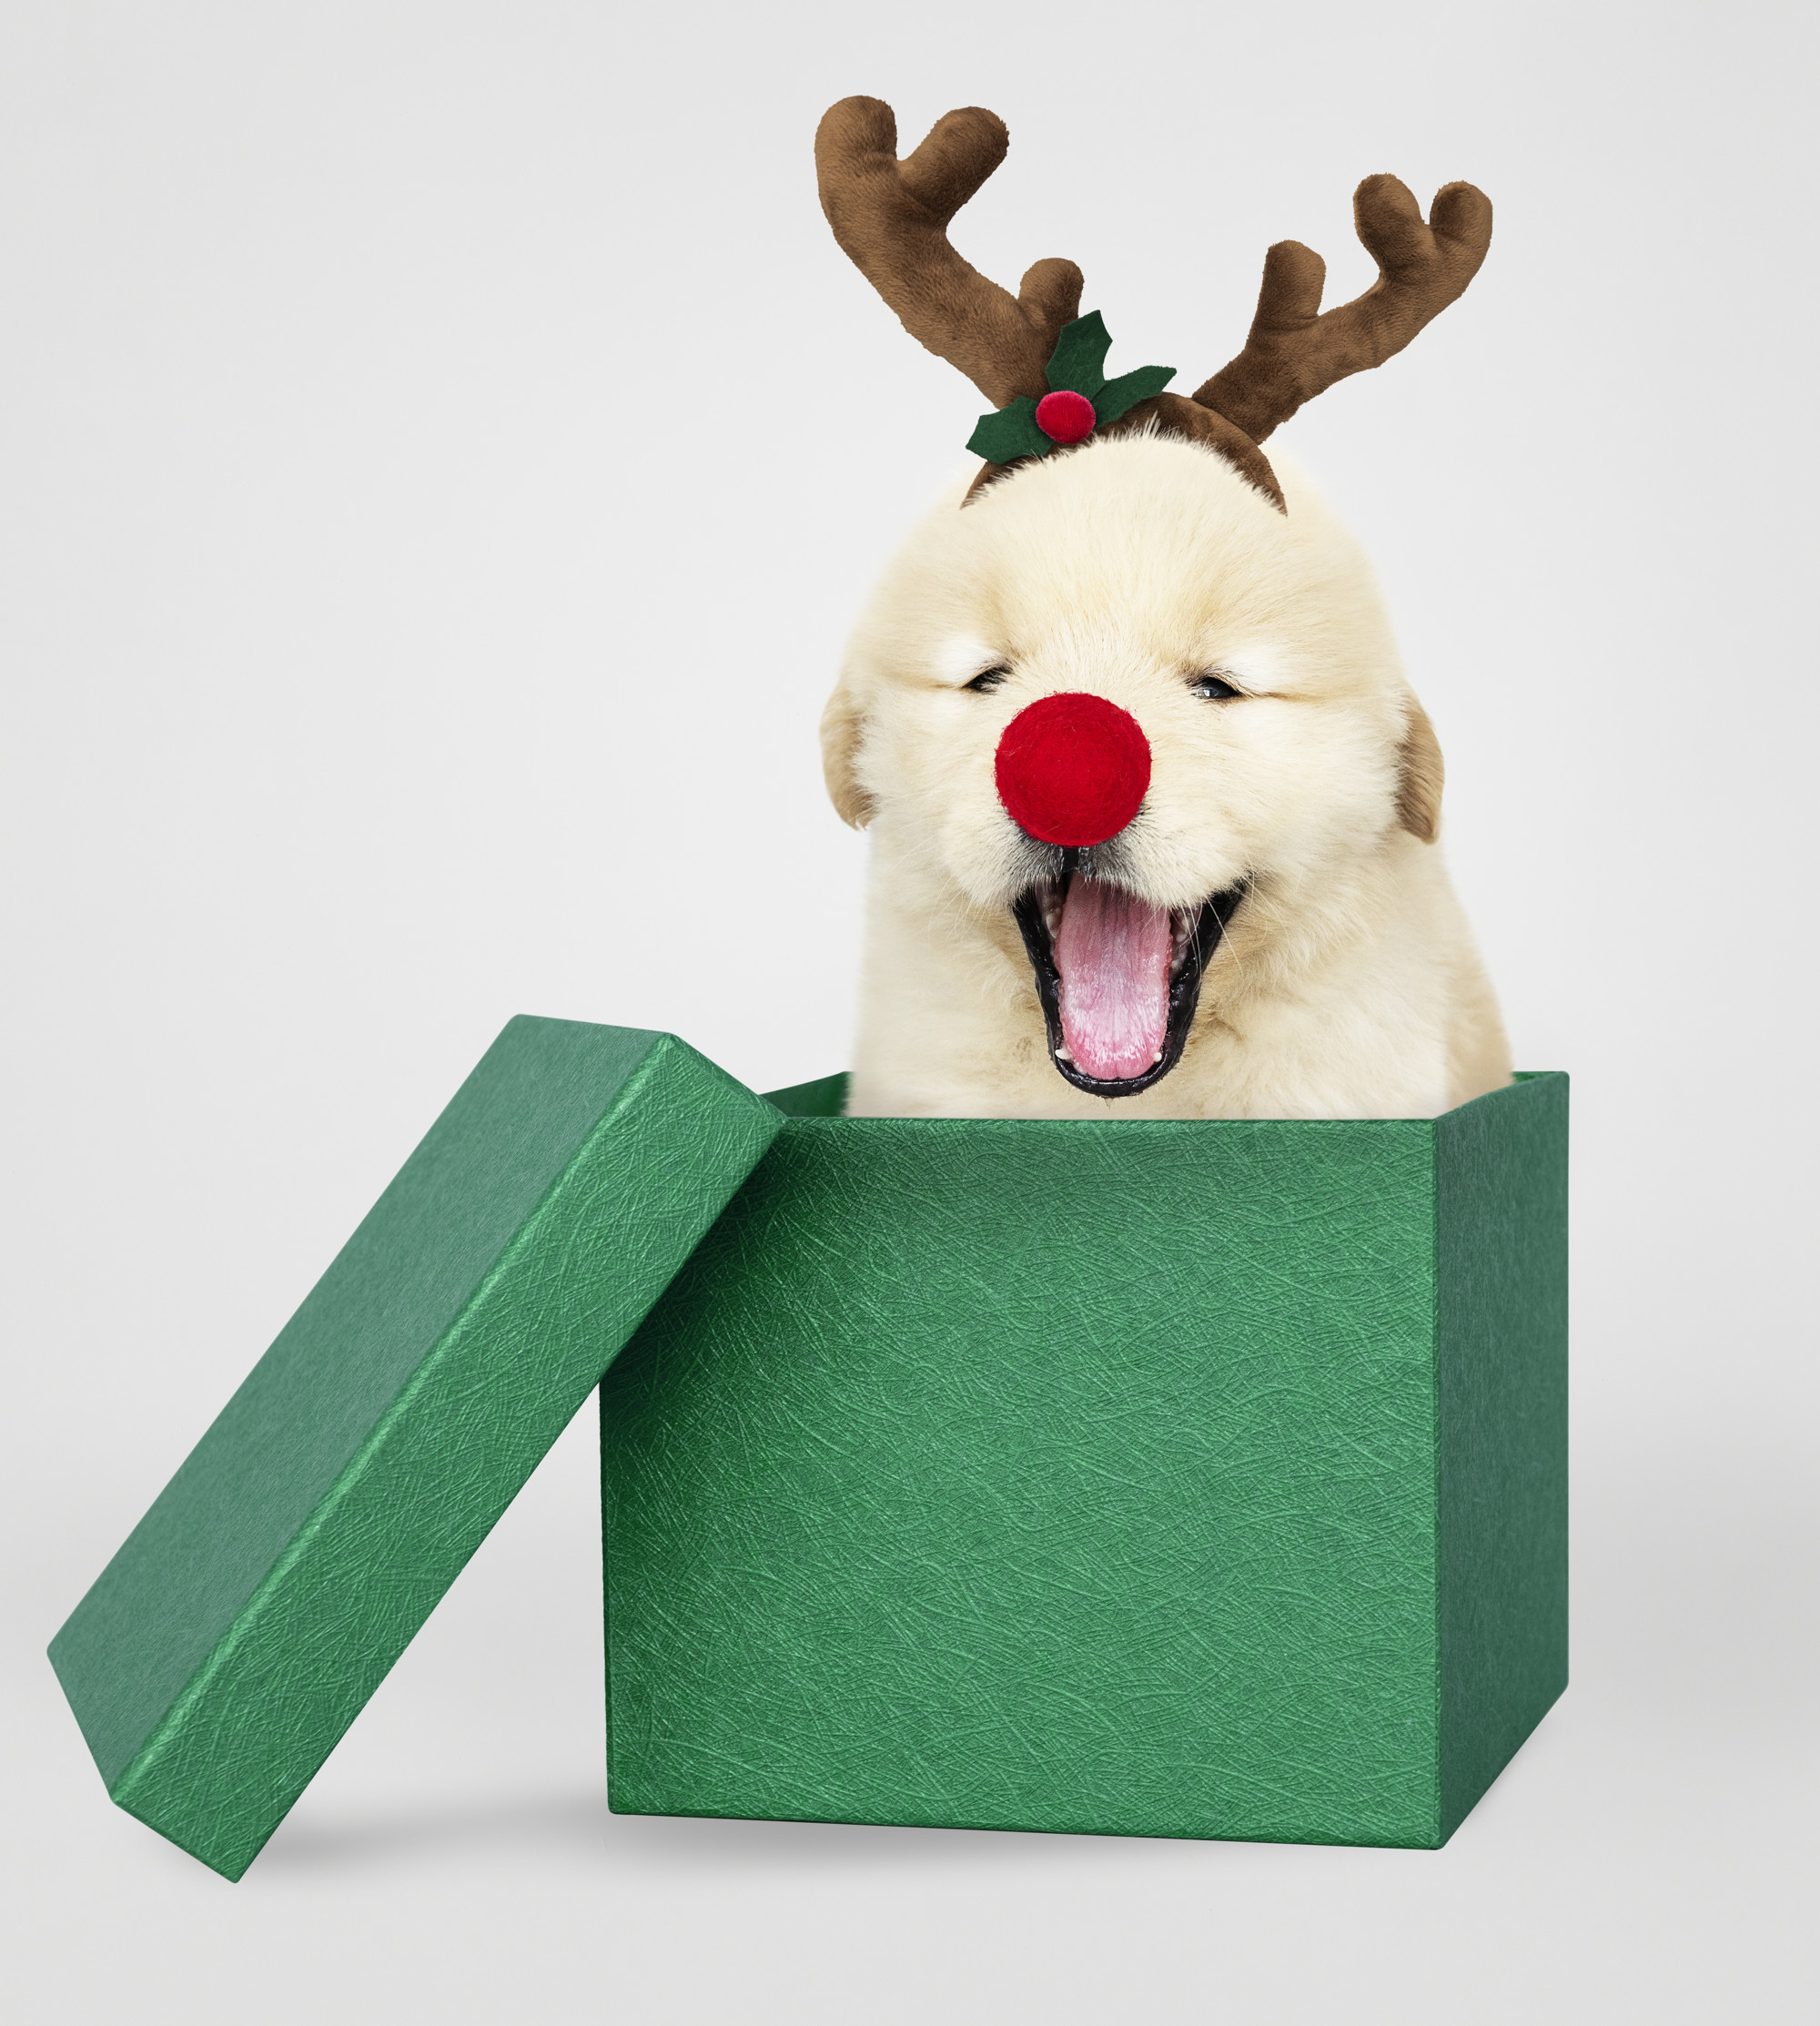 Golden Retriever puppy in a green Christmas gift box